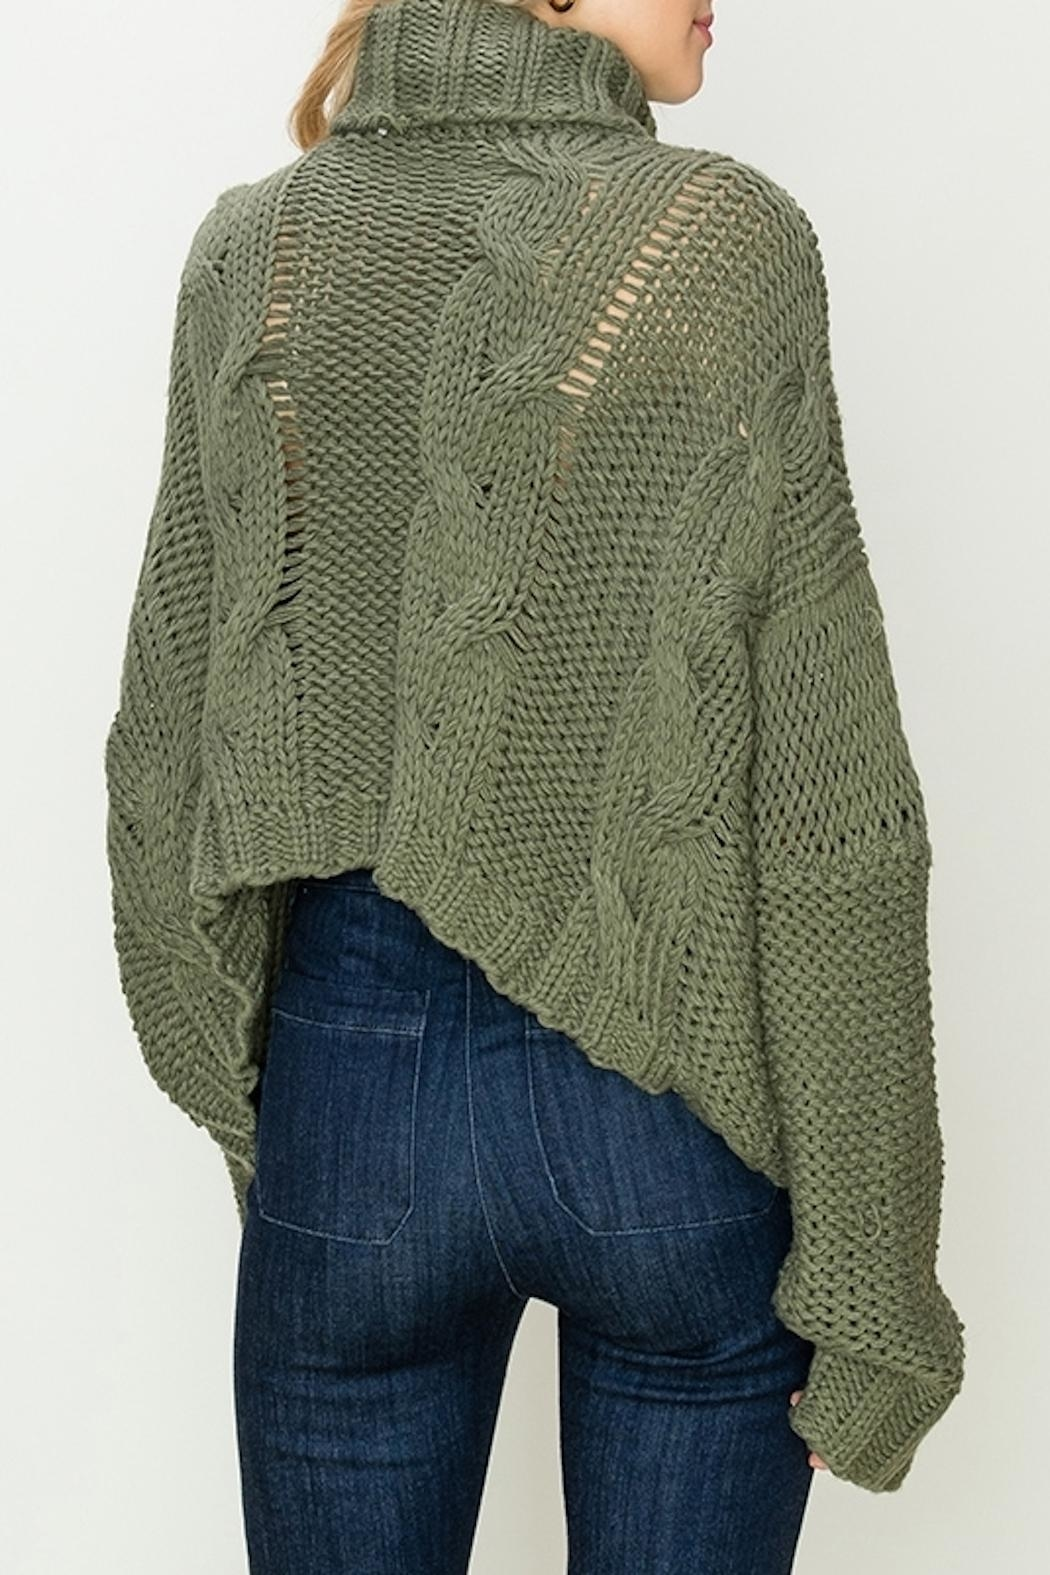 Apricot Lane St. Cloud Duddley Sweater Olive - Front Full Image